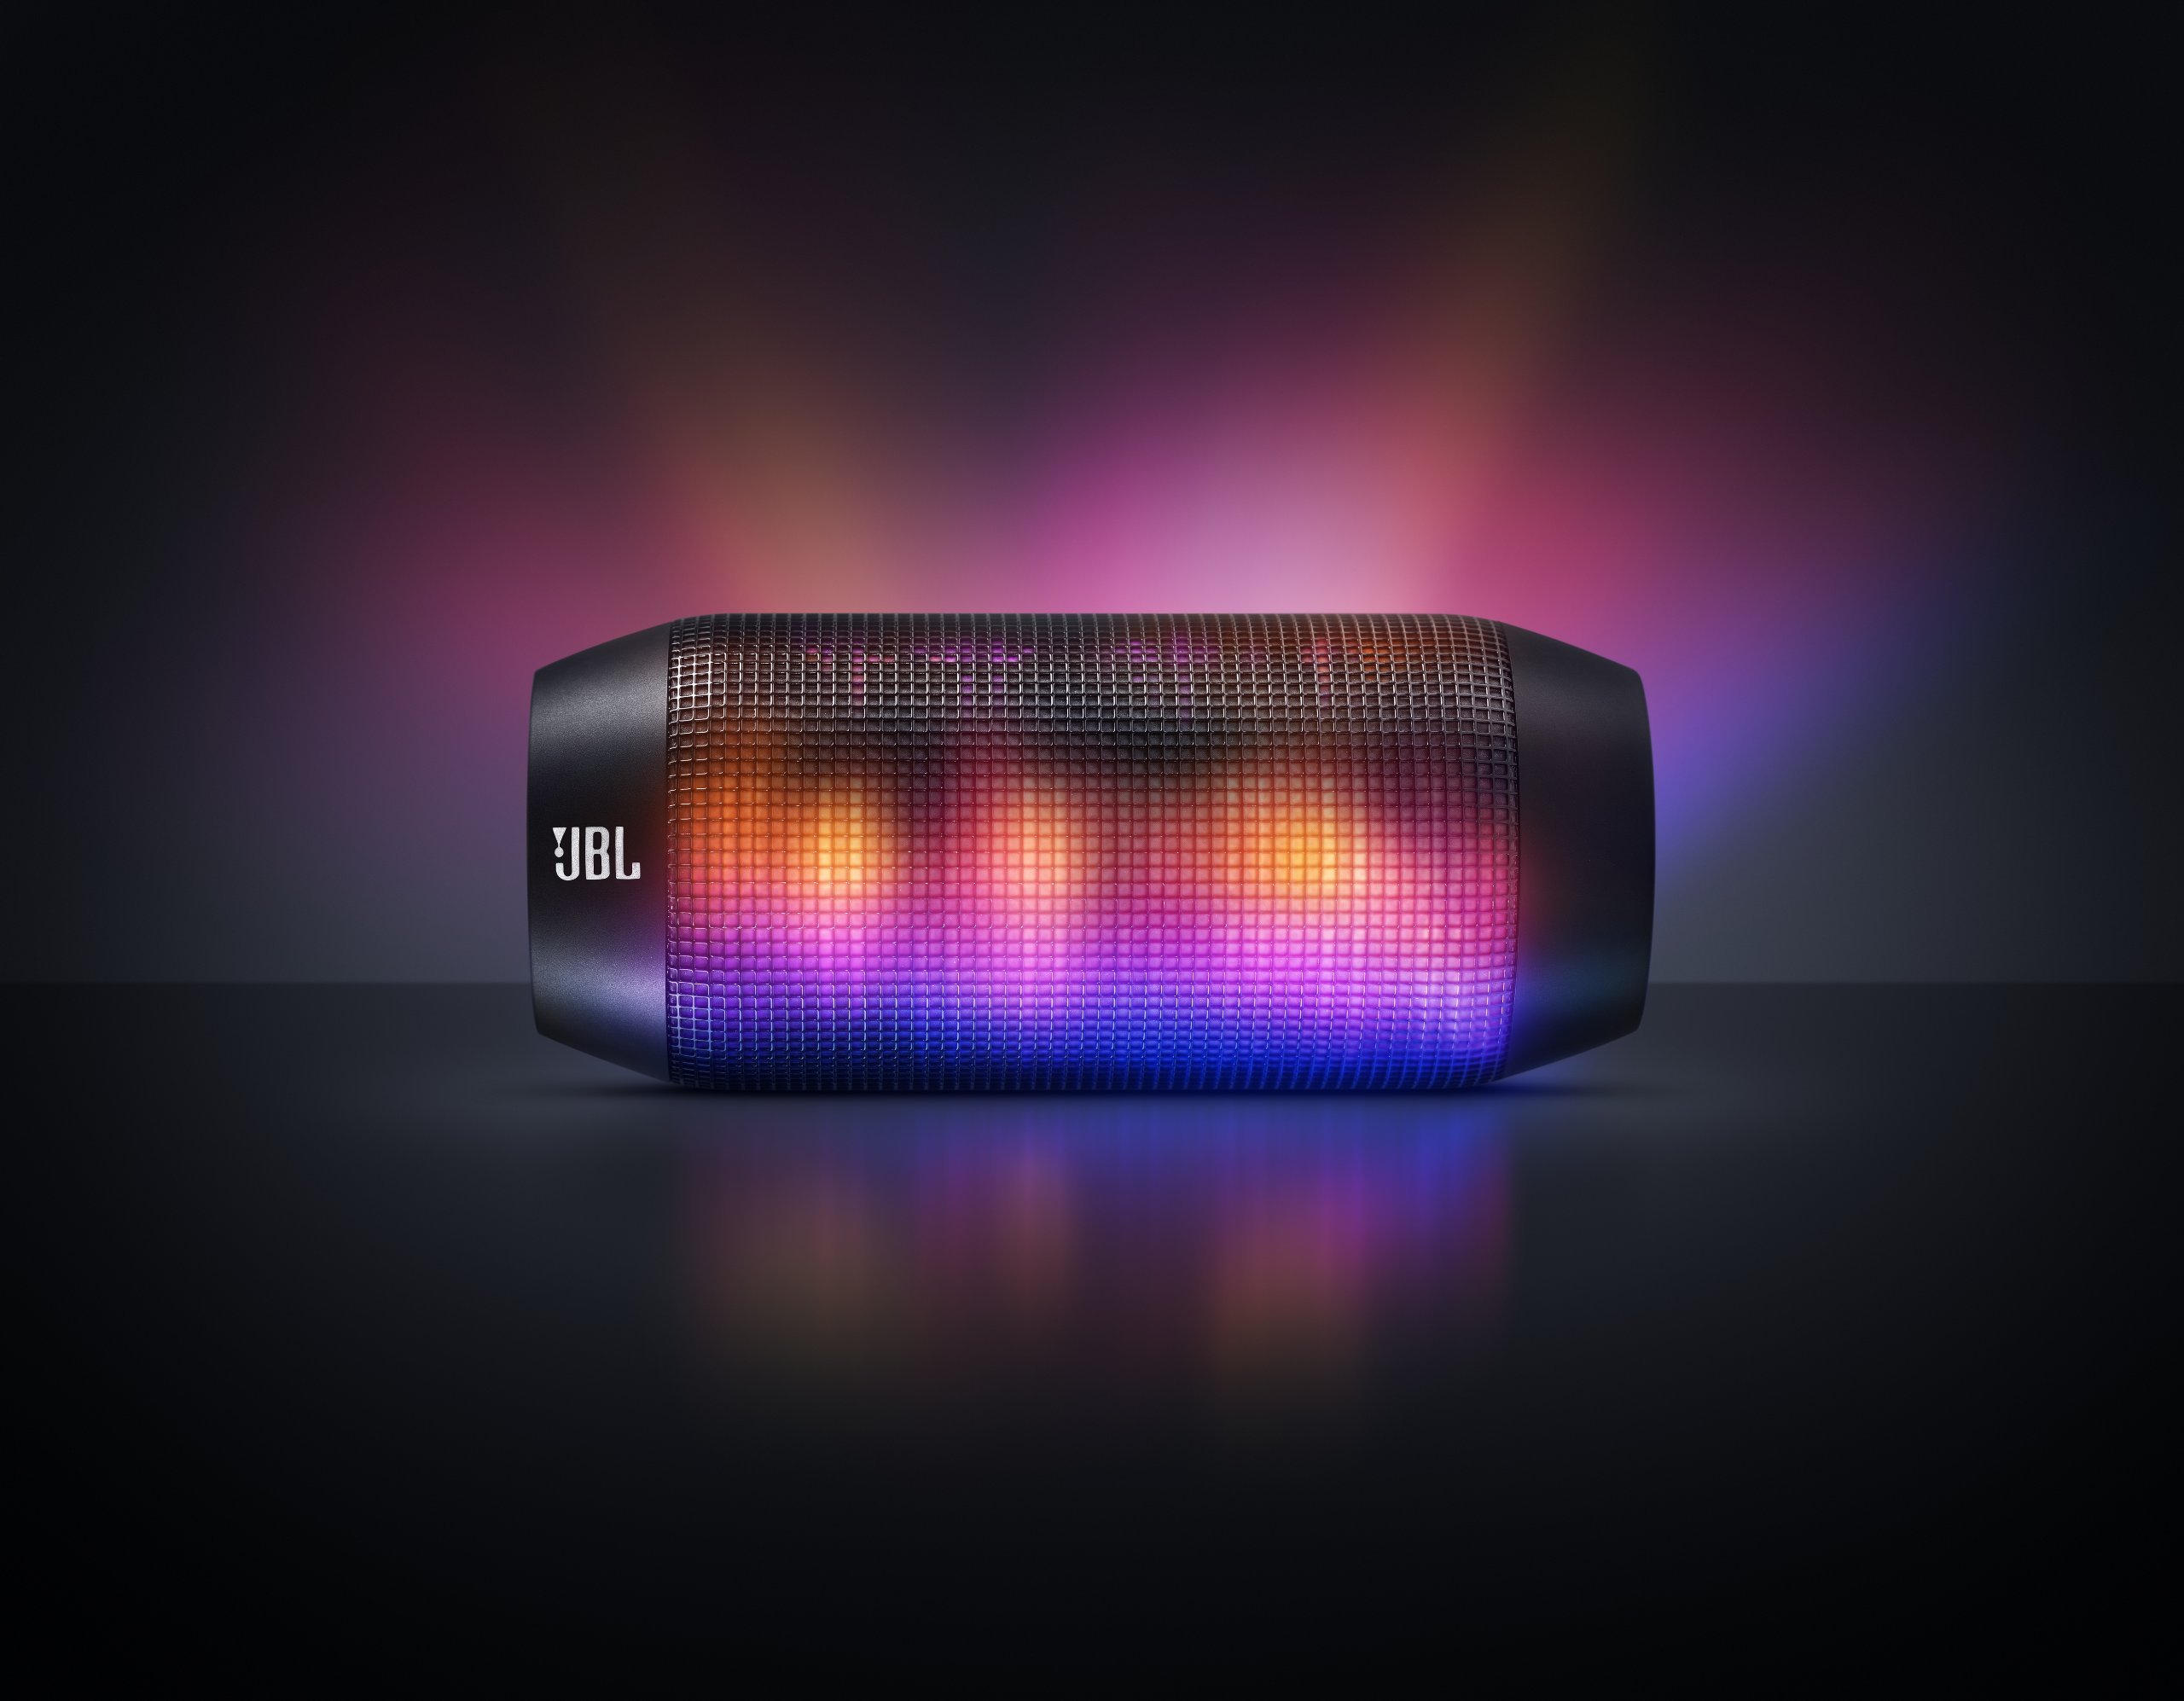 JBL Pulse Wireless Bluetooth Speaker with LED lights and NFC Pairing (Black) by JBL (Image #12)